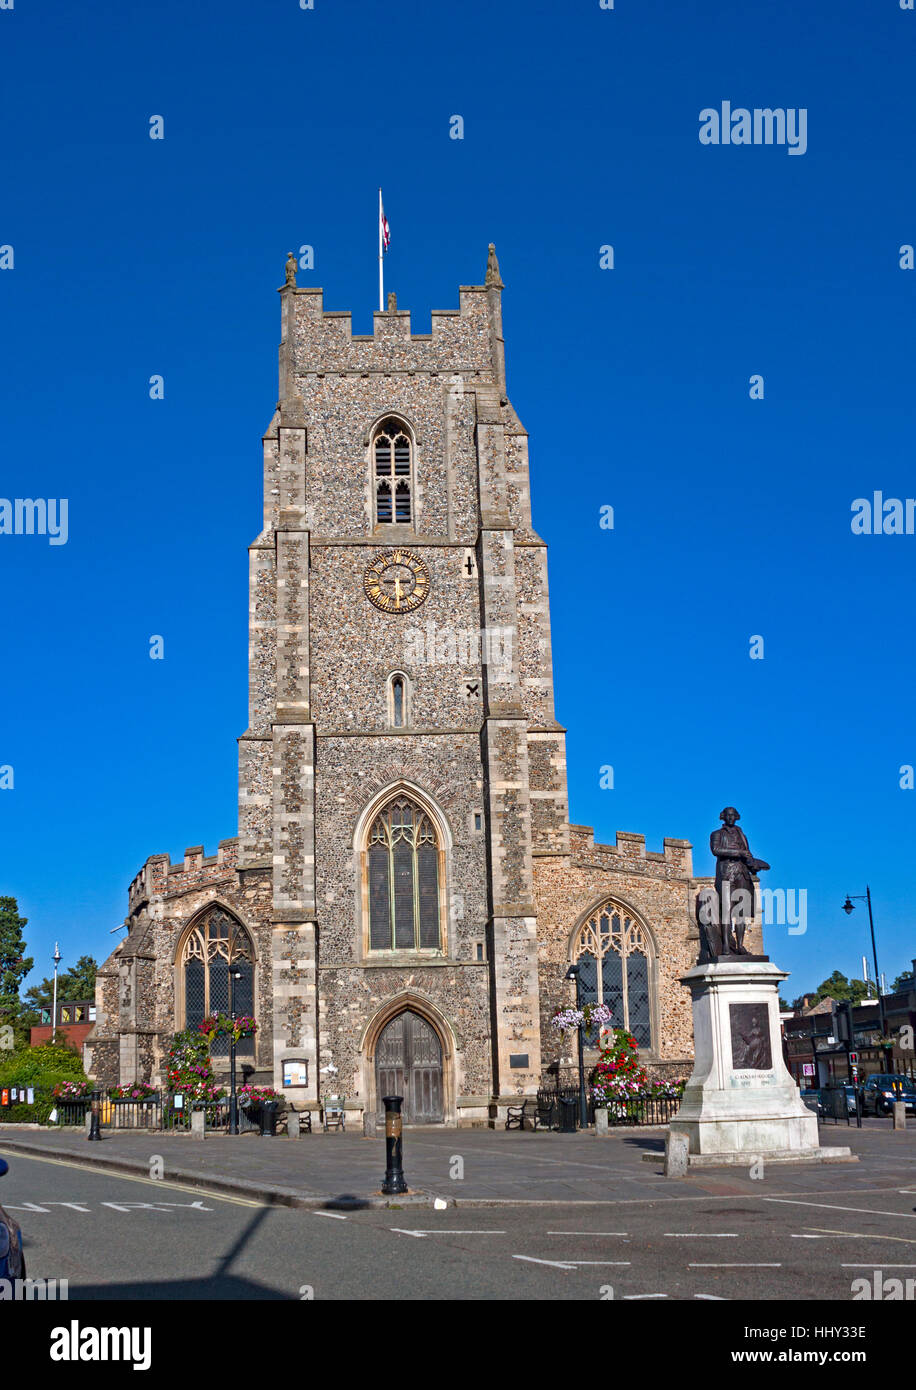 St. Peter's Church in the market square, Sudbury, Suffolk, England. The church is no longer used for worship. - Stock Image